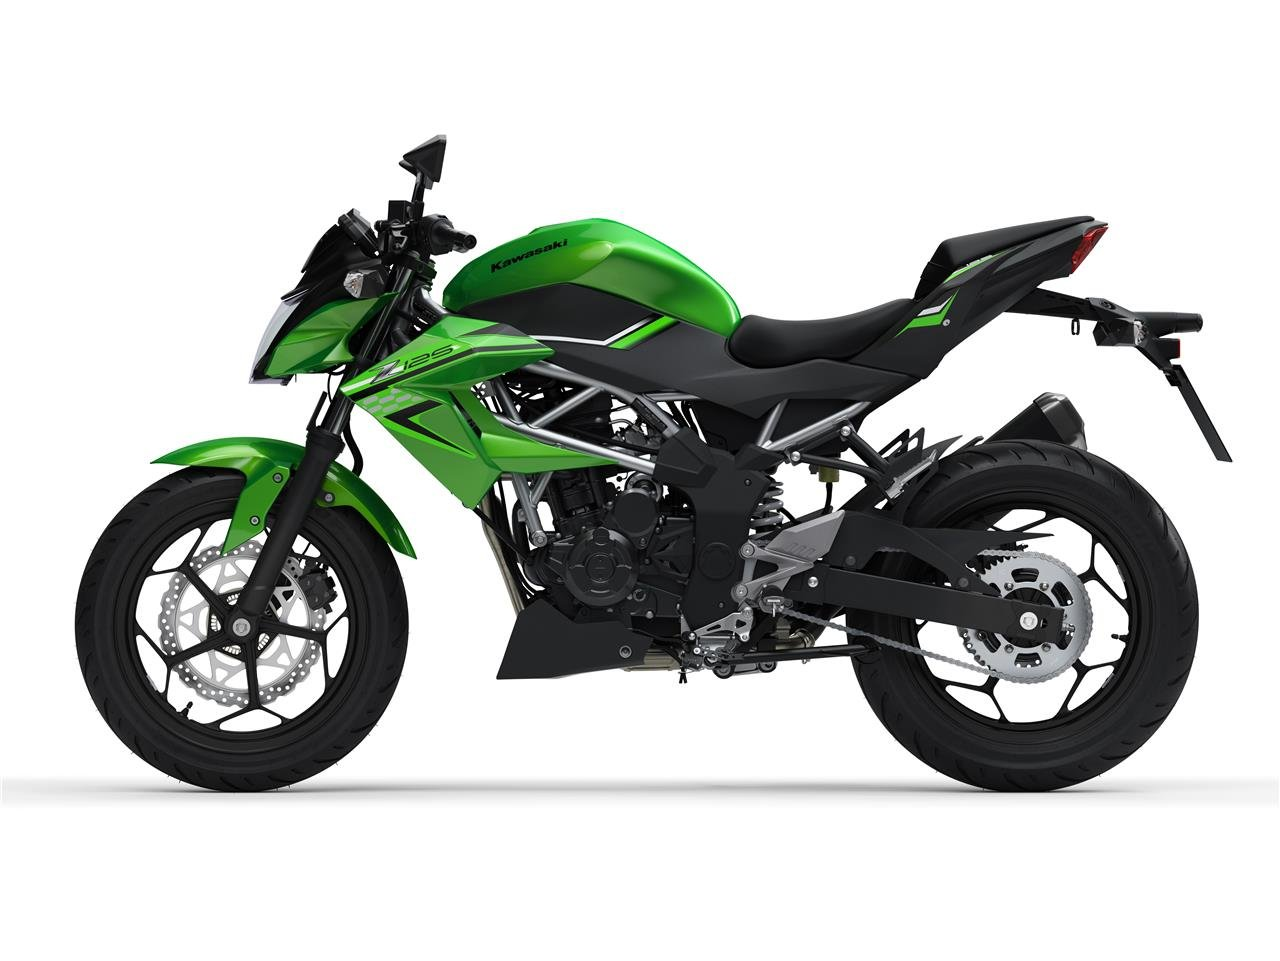 New 2021 Kawasaki Z 125 ABS Green For Sale (picture 3 of 6)